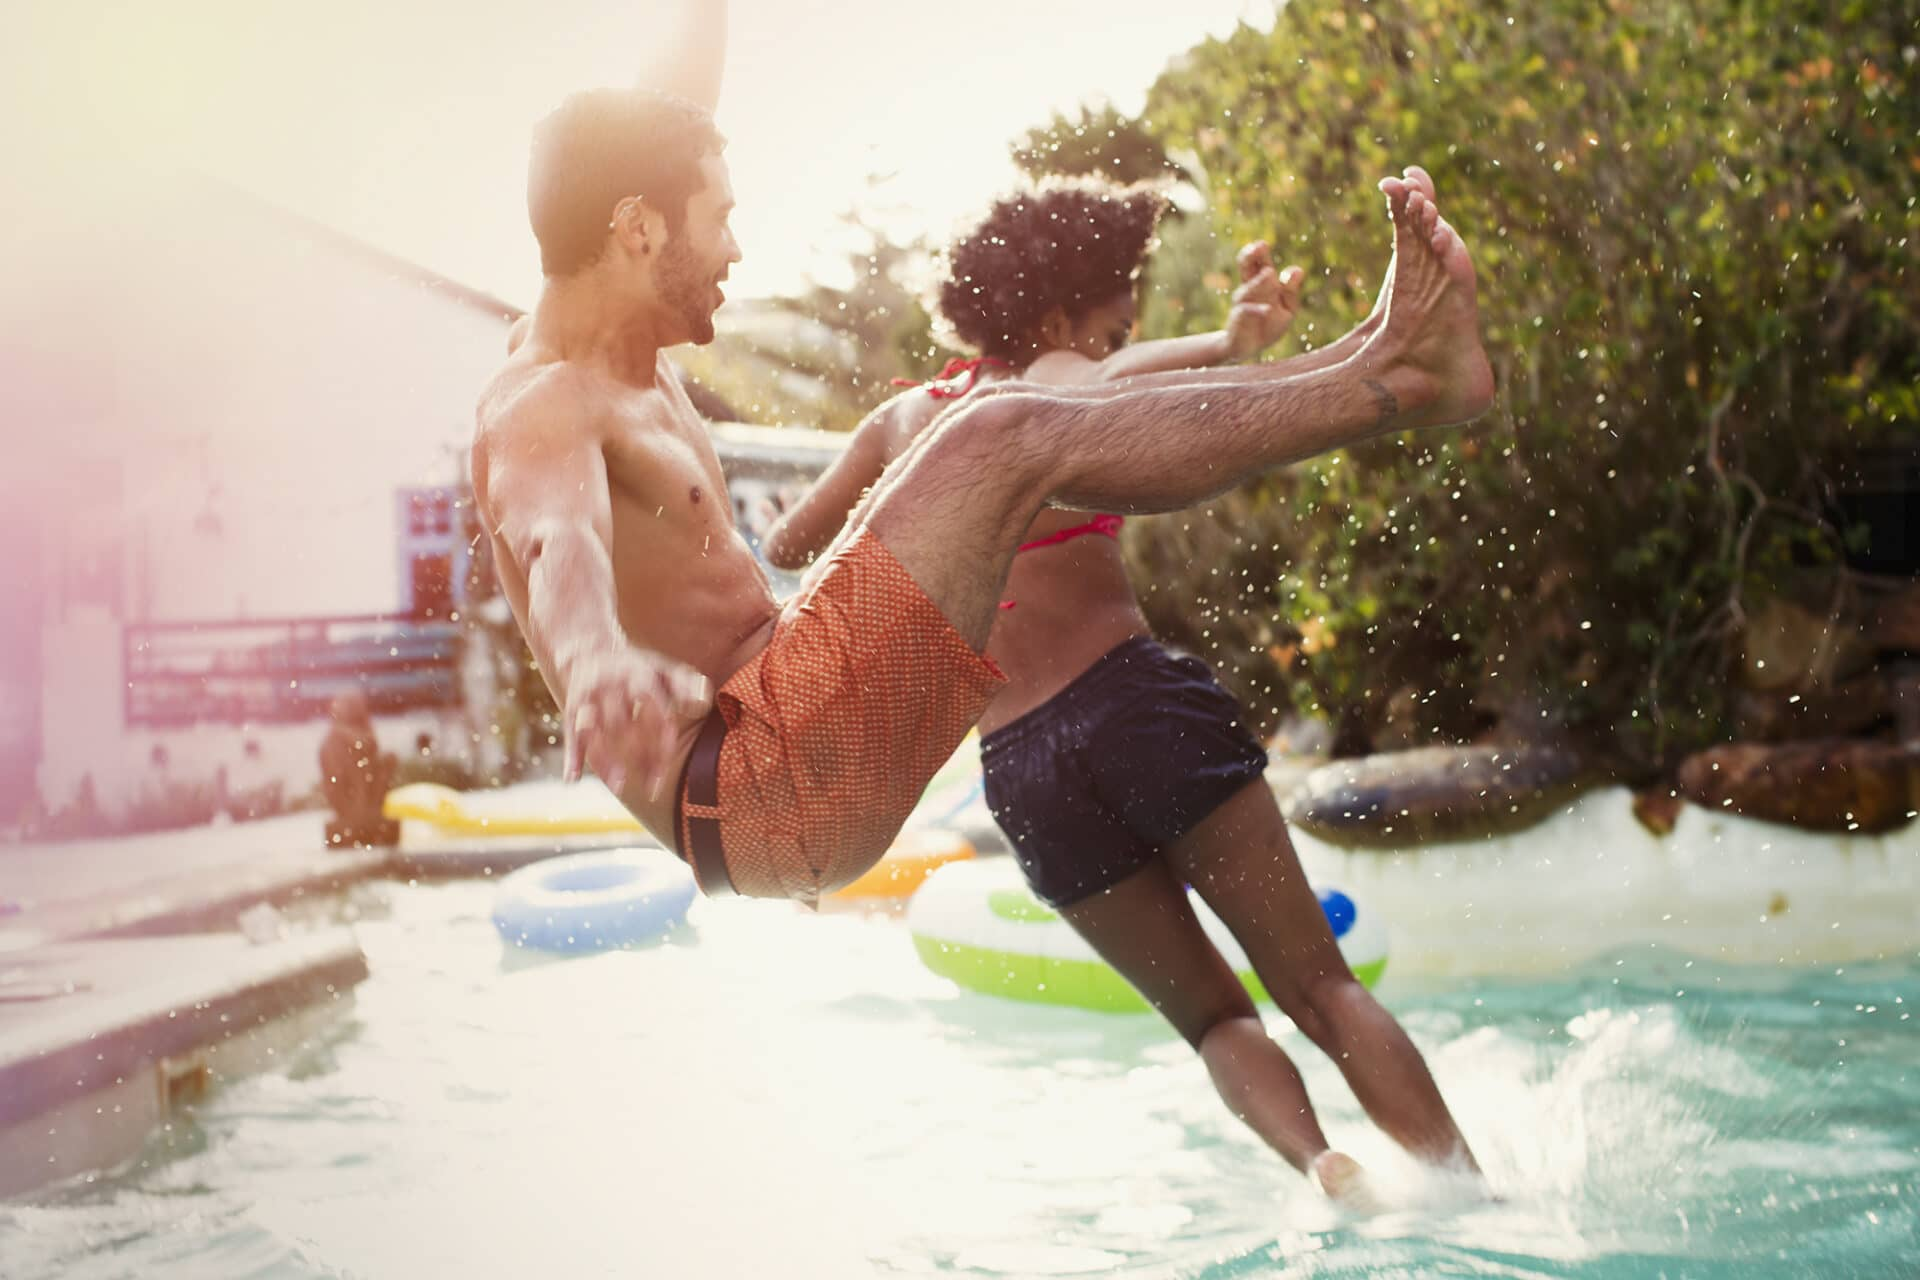 Friends jumping into swimming pool at pool party